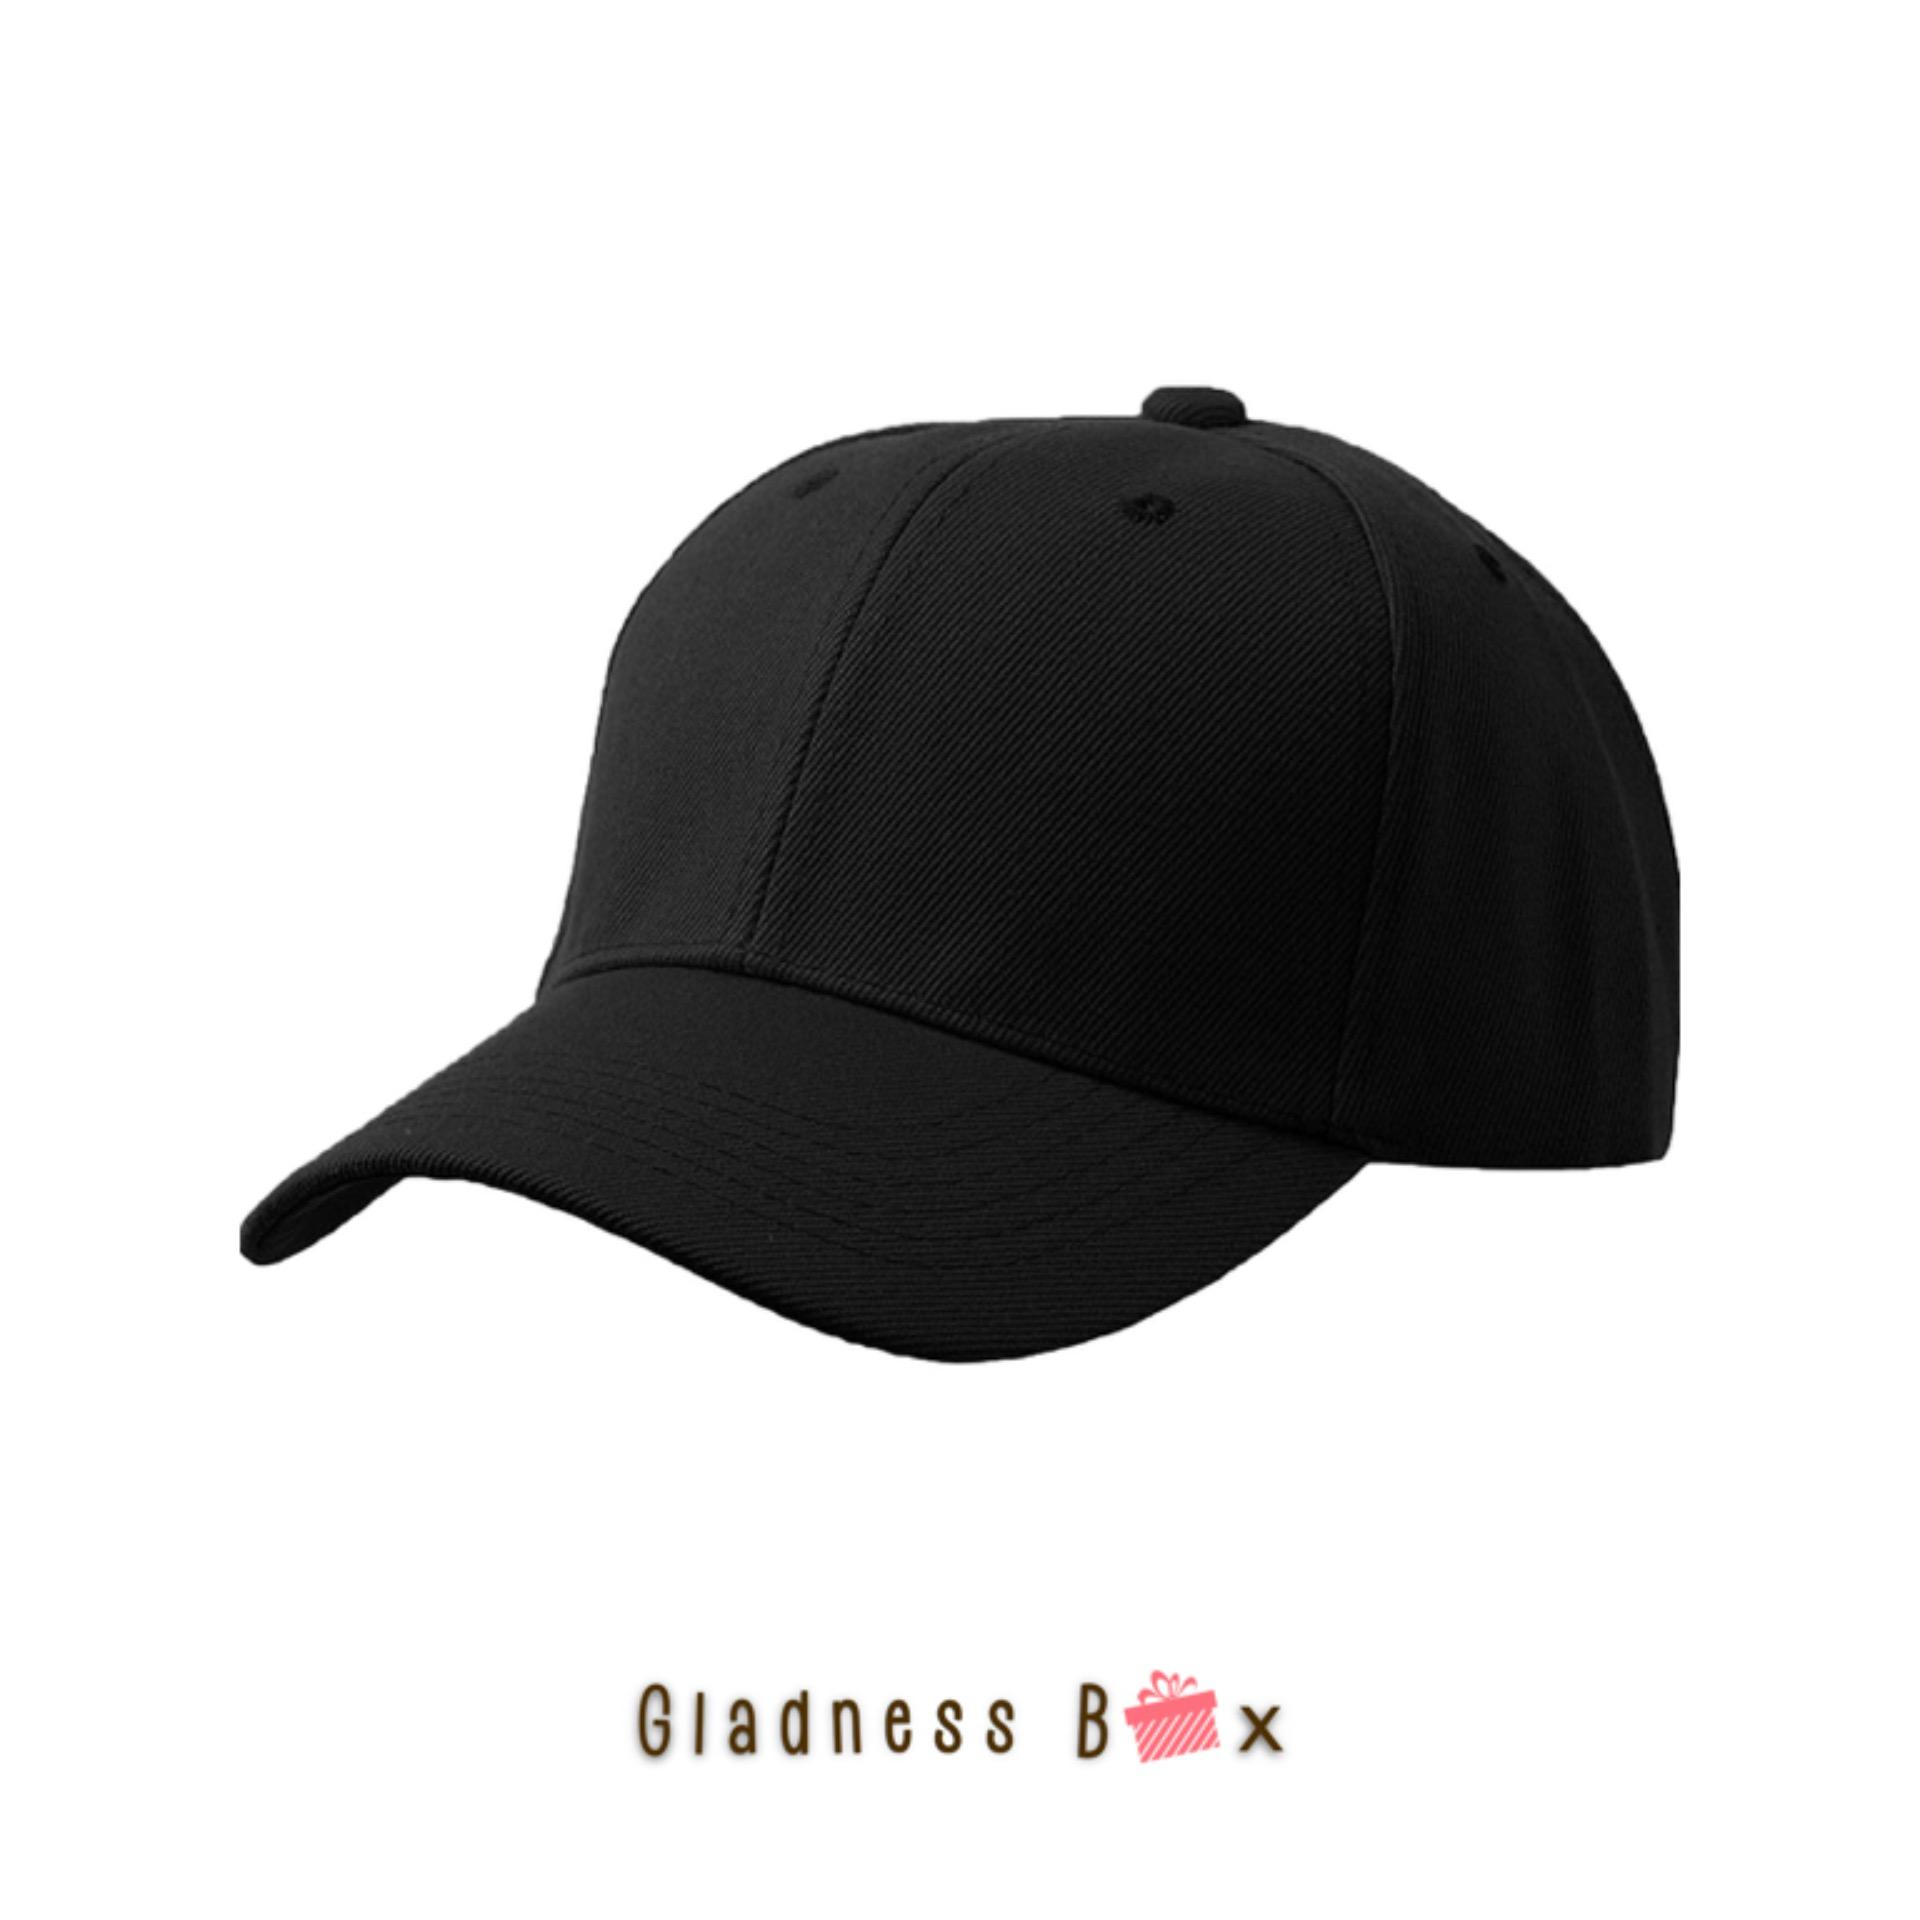 0da8cb93acd Gladness Box High Quality Plain Baseball Cap for Men Women Unisex